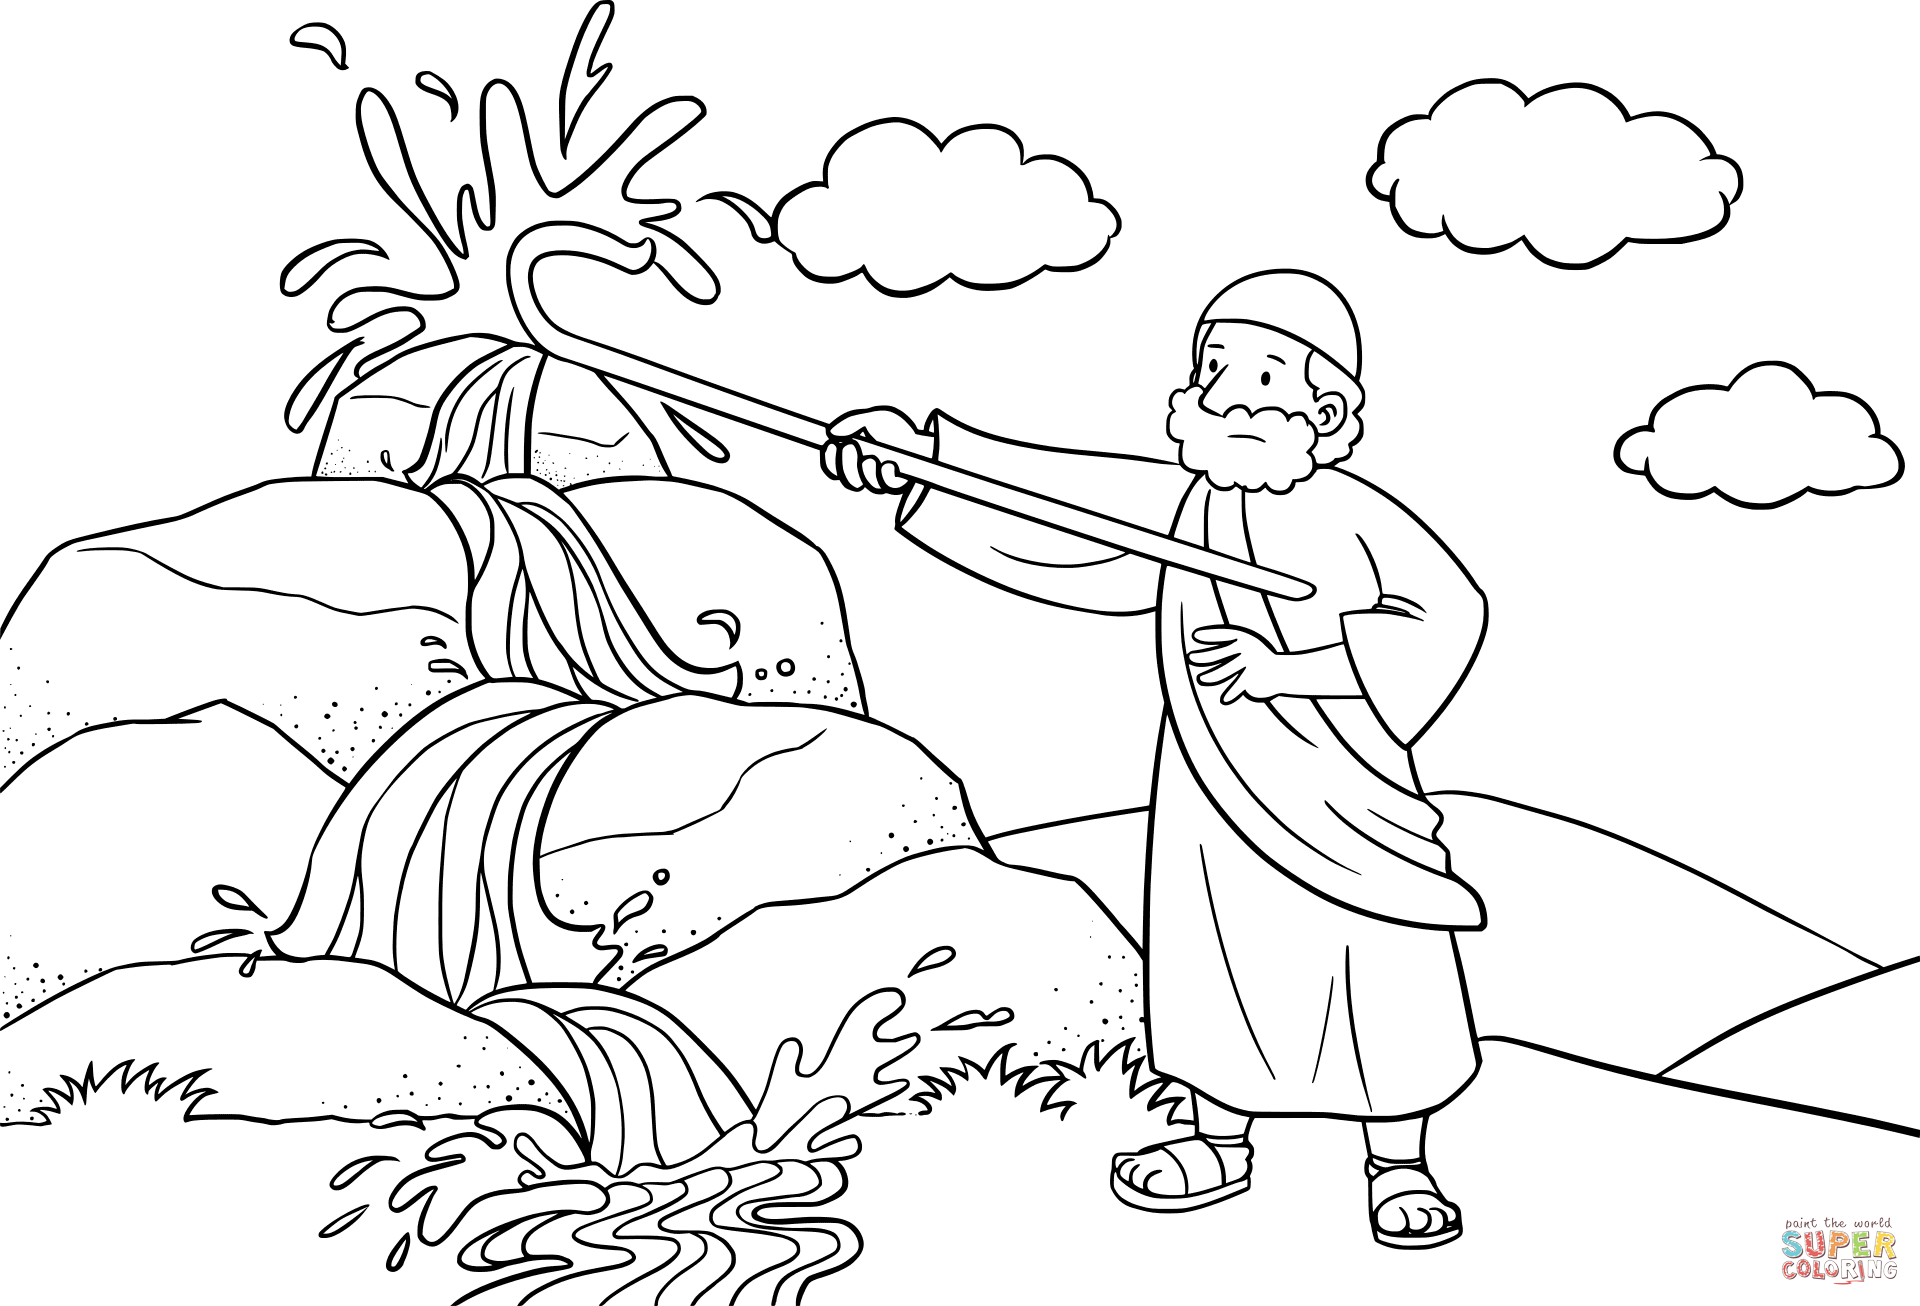 Moses Strikes the Rock with His Staff coloring page from